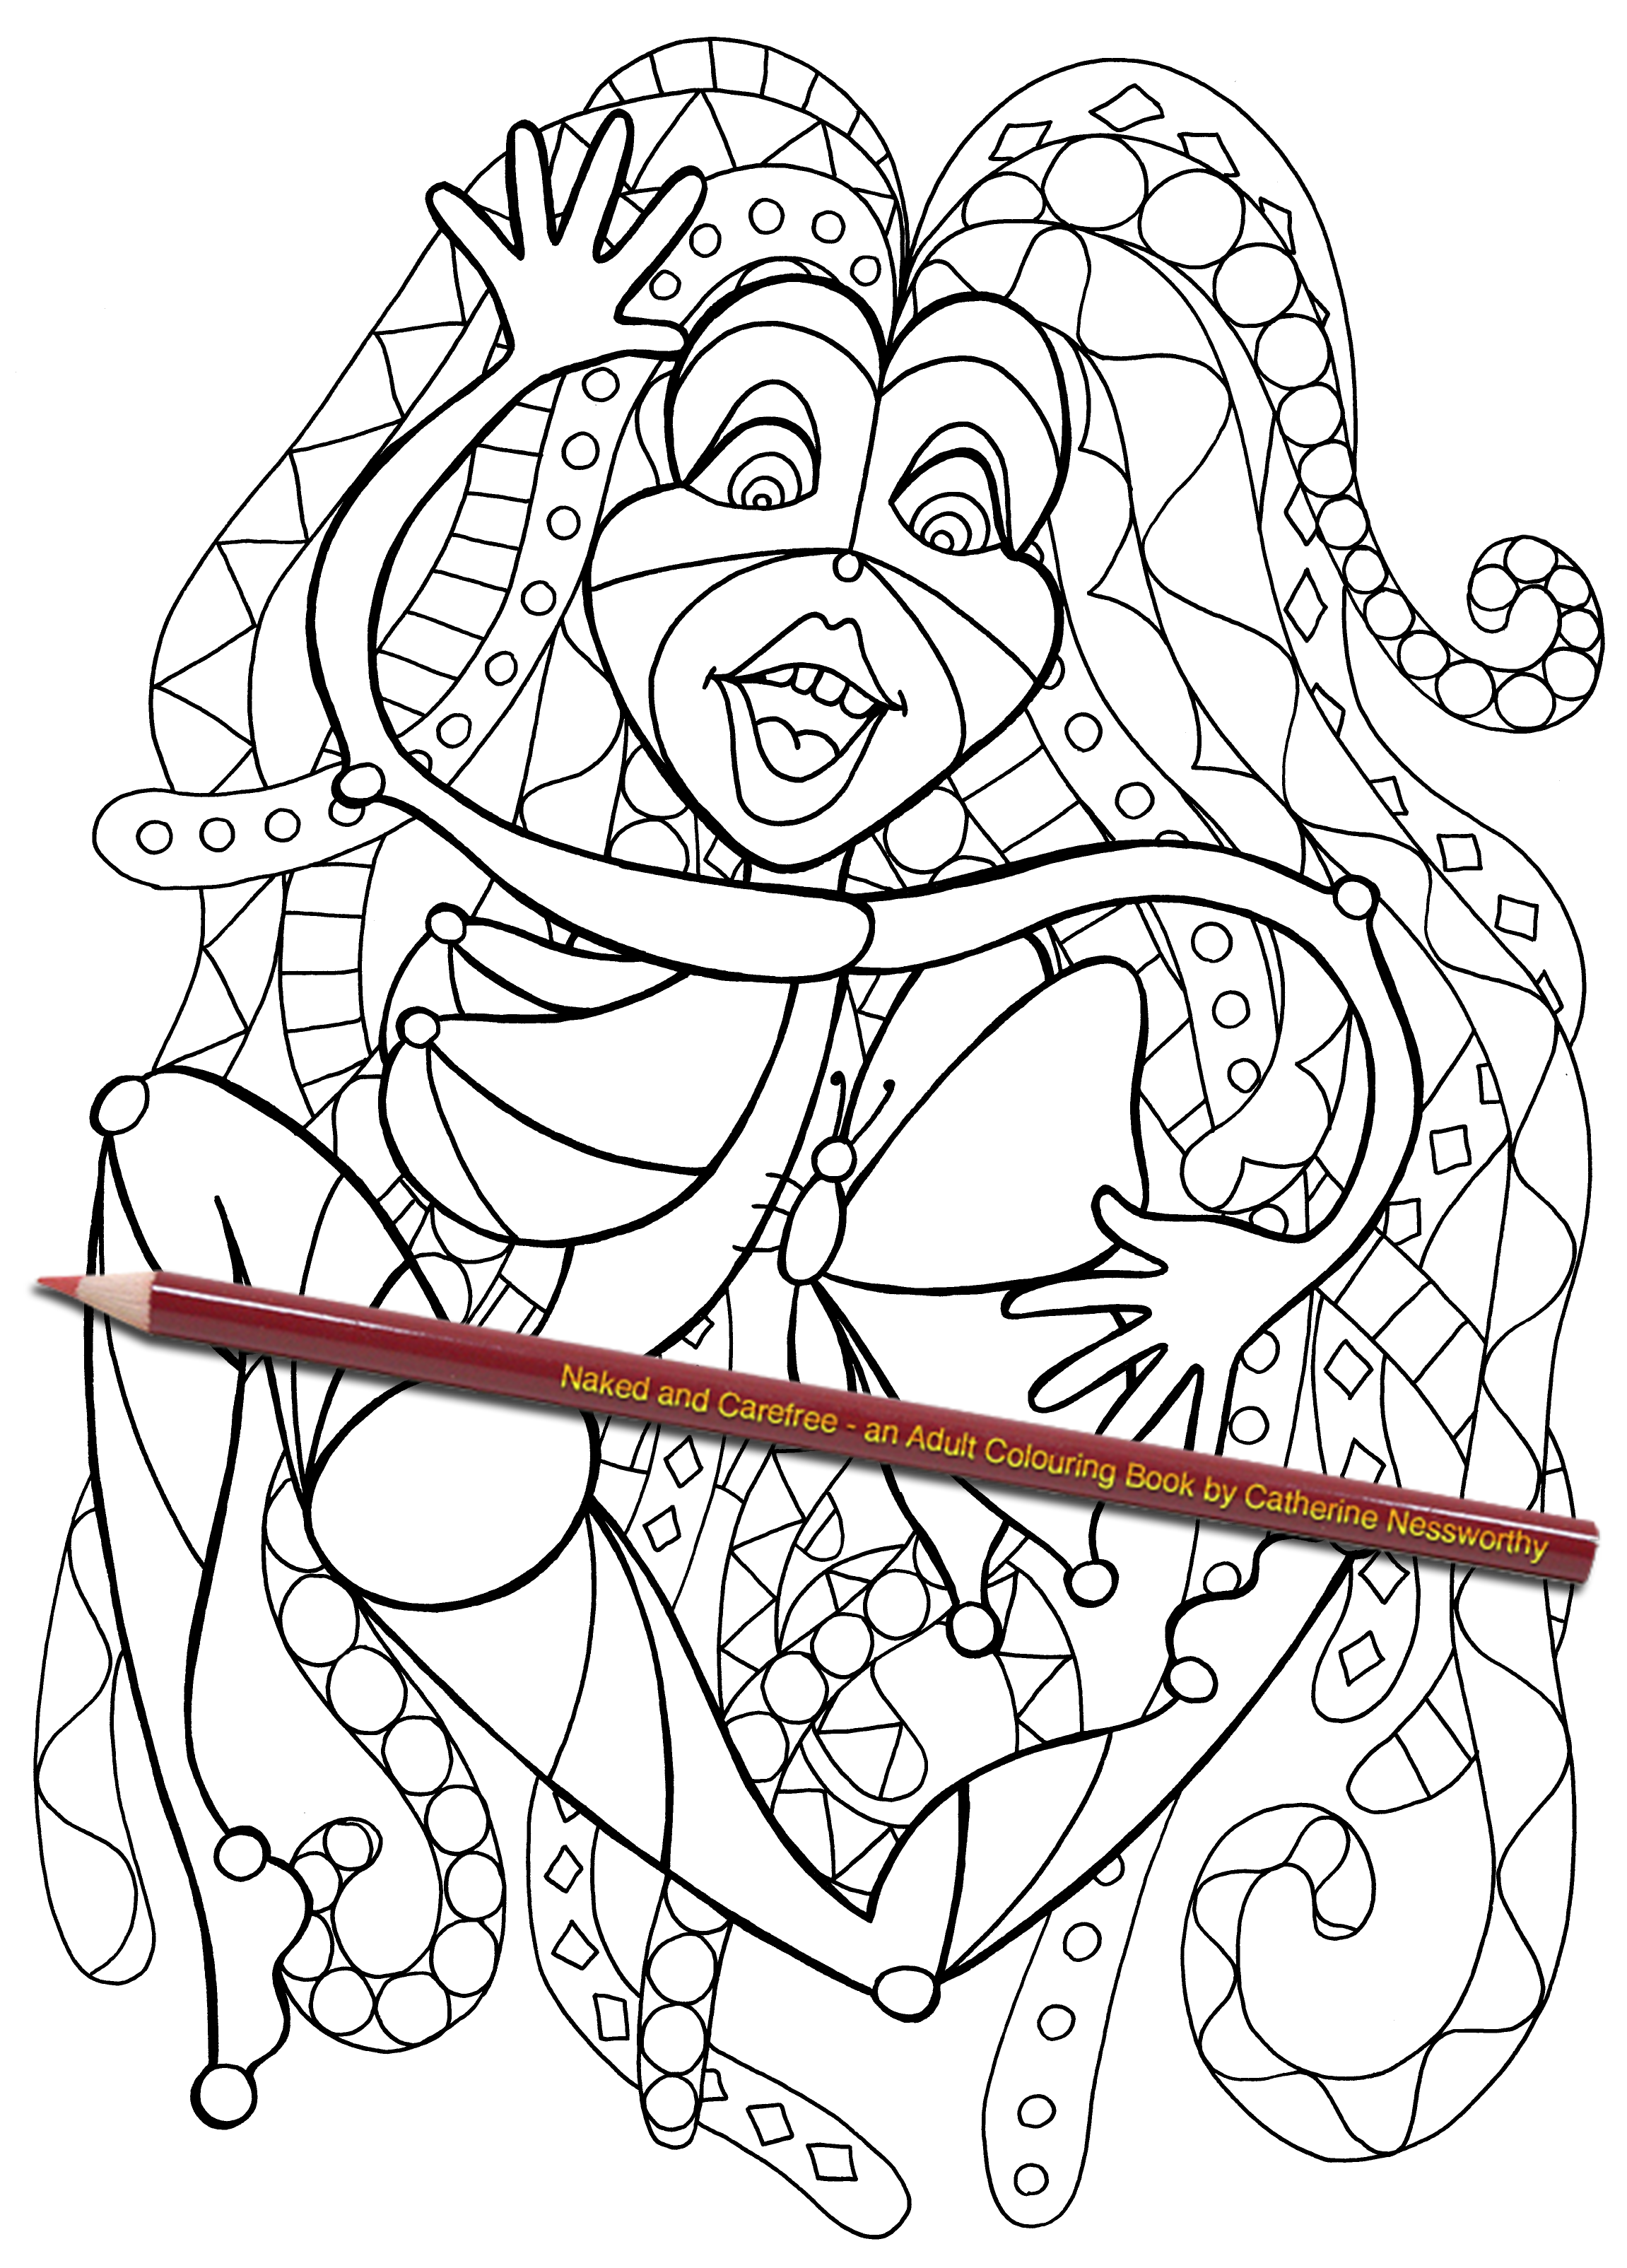 adult coloring book Naked